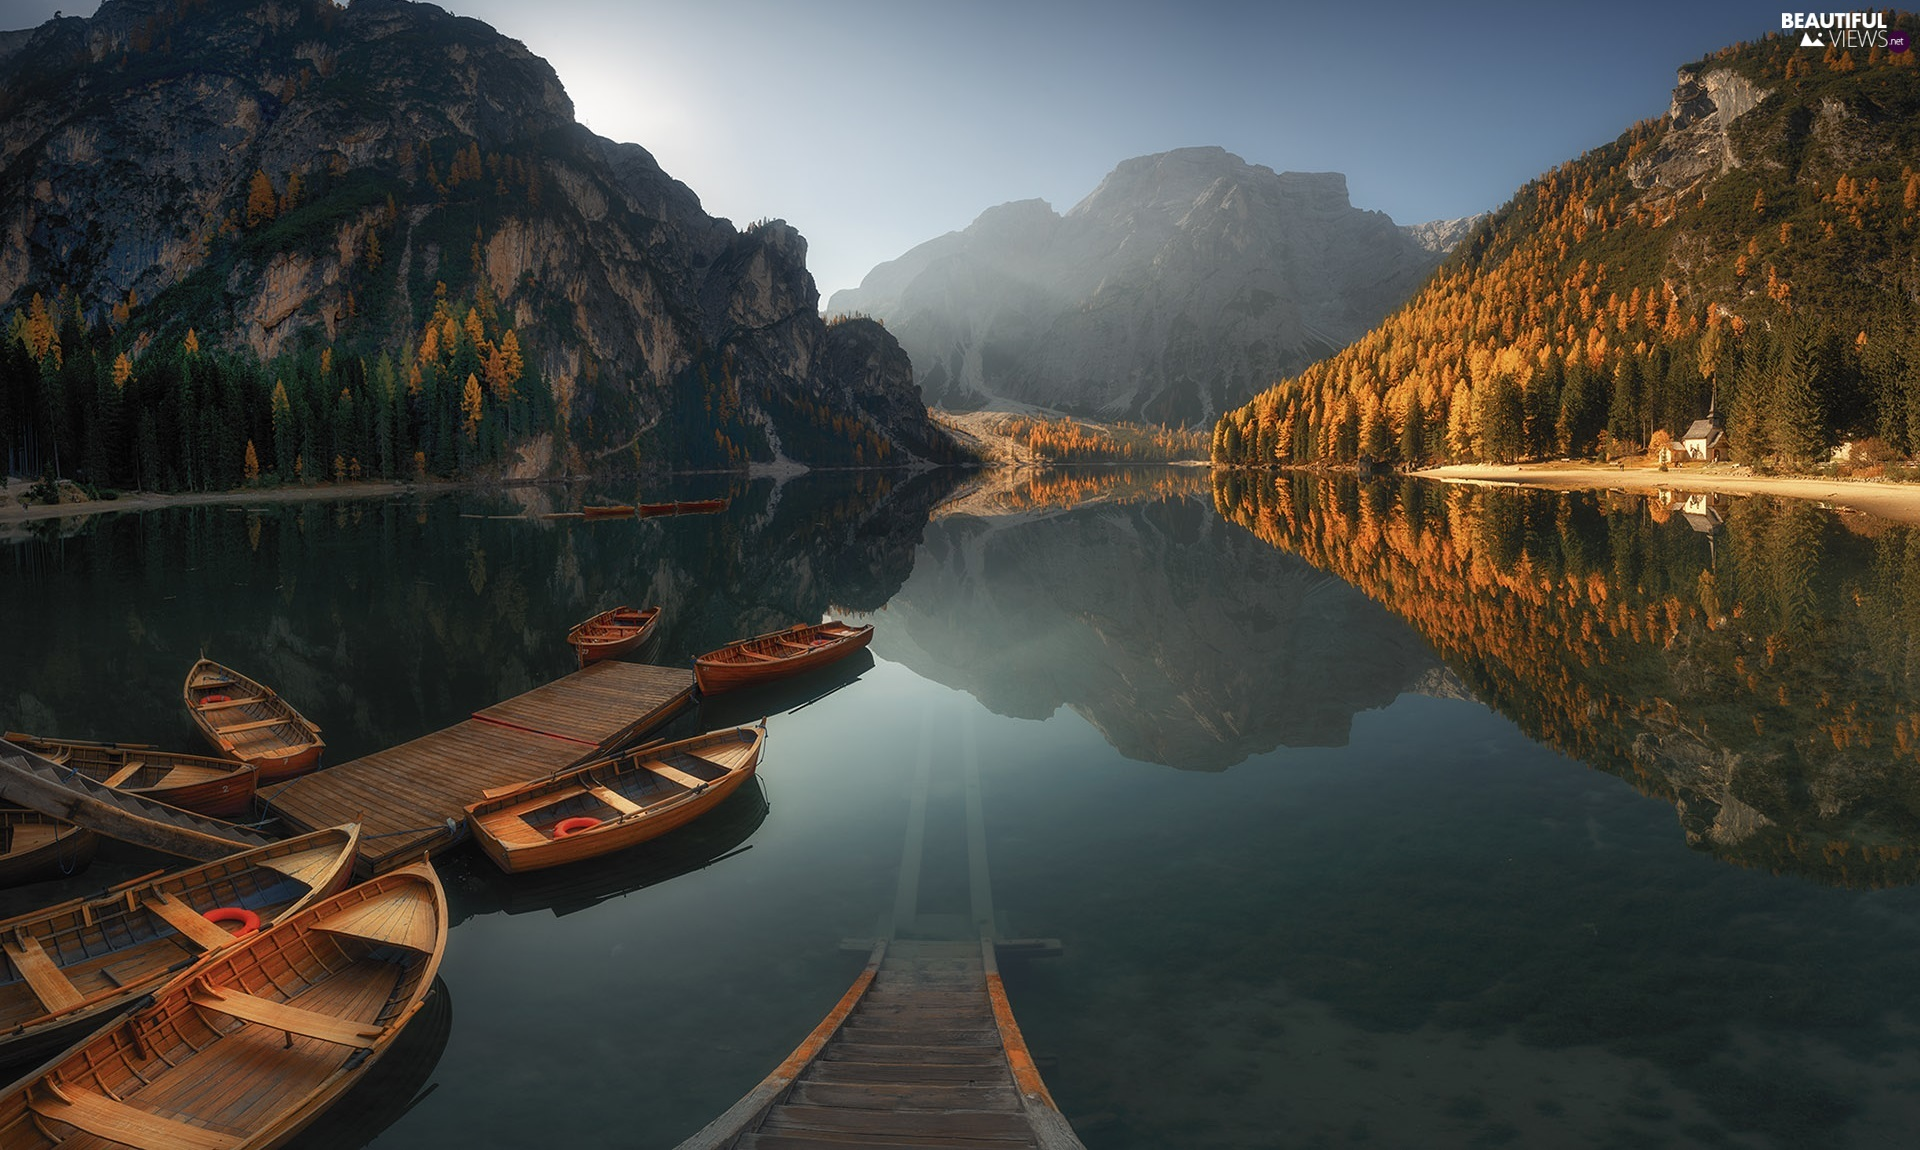 lake, autumn, Platform, Boats, woods, Mountains